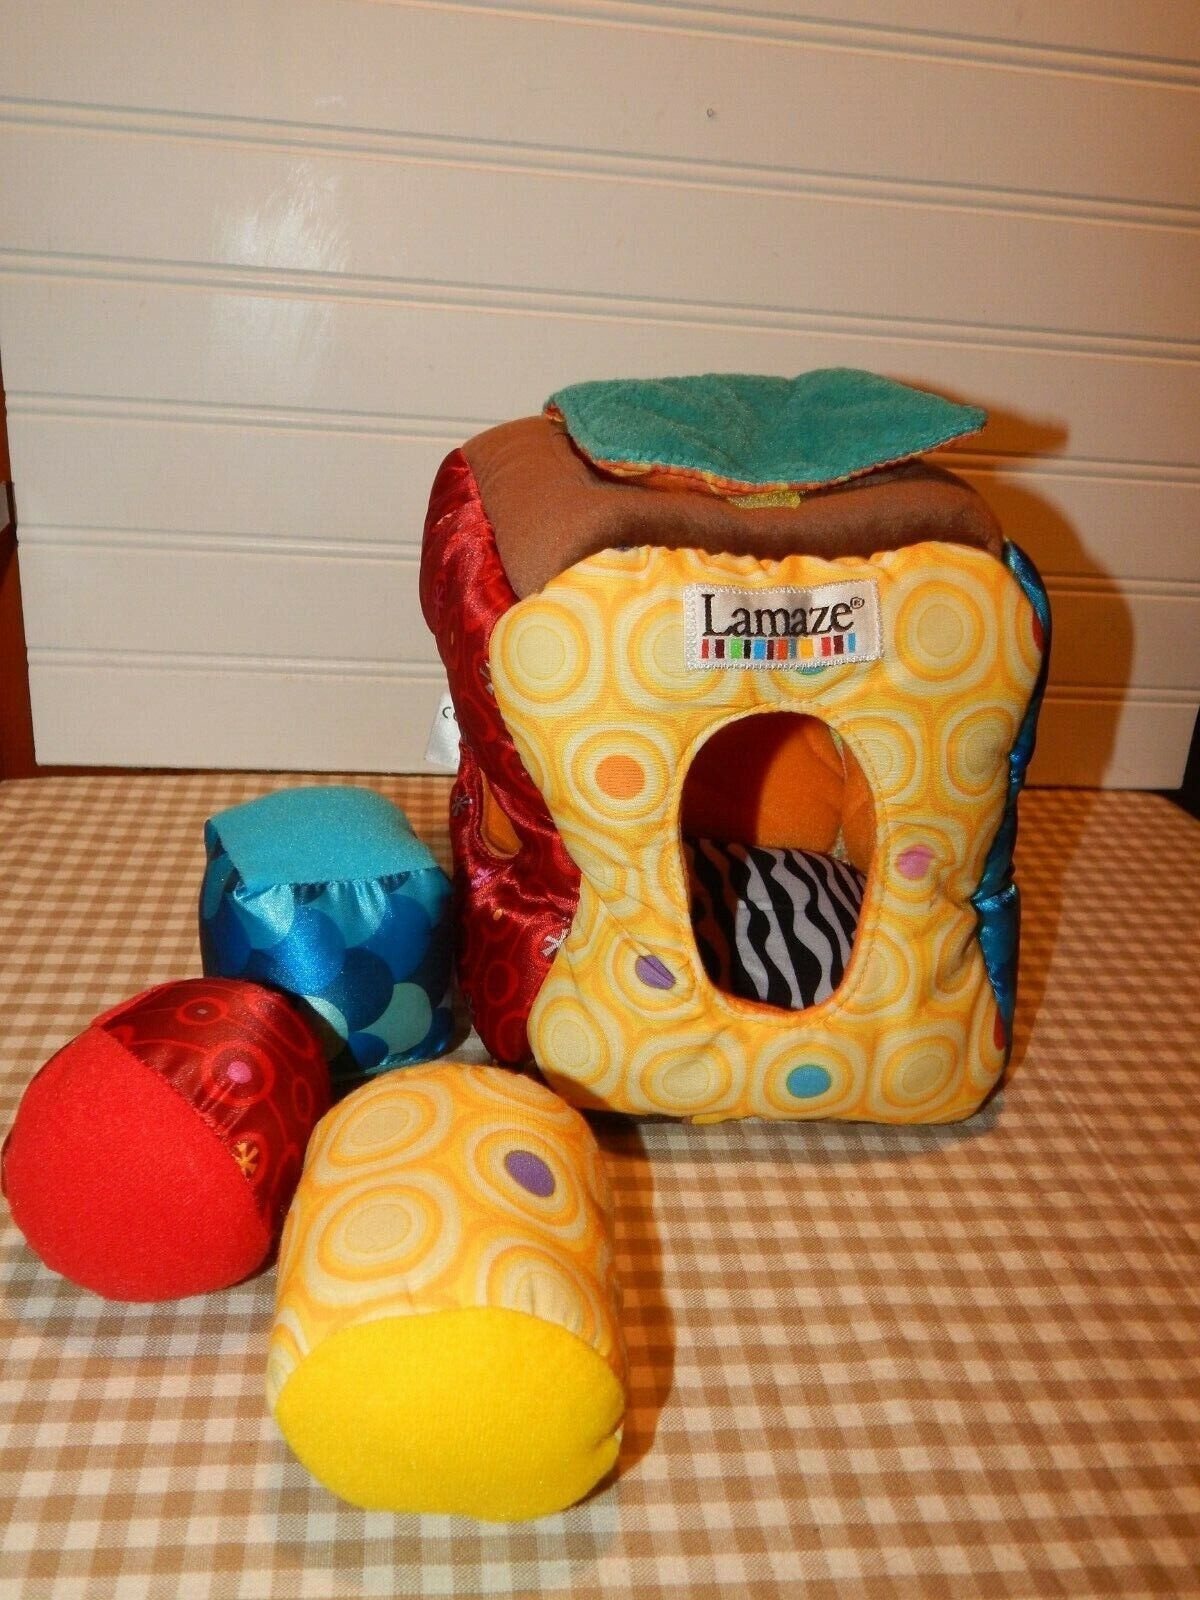 Lamaze Giggle Bunny Ball Soft Textures Silly Sounds For Sale Online Ebay